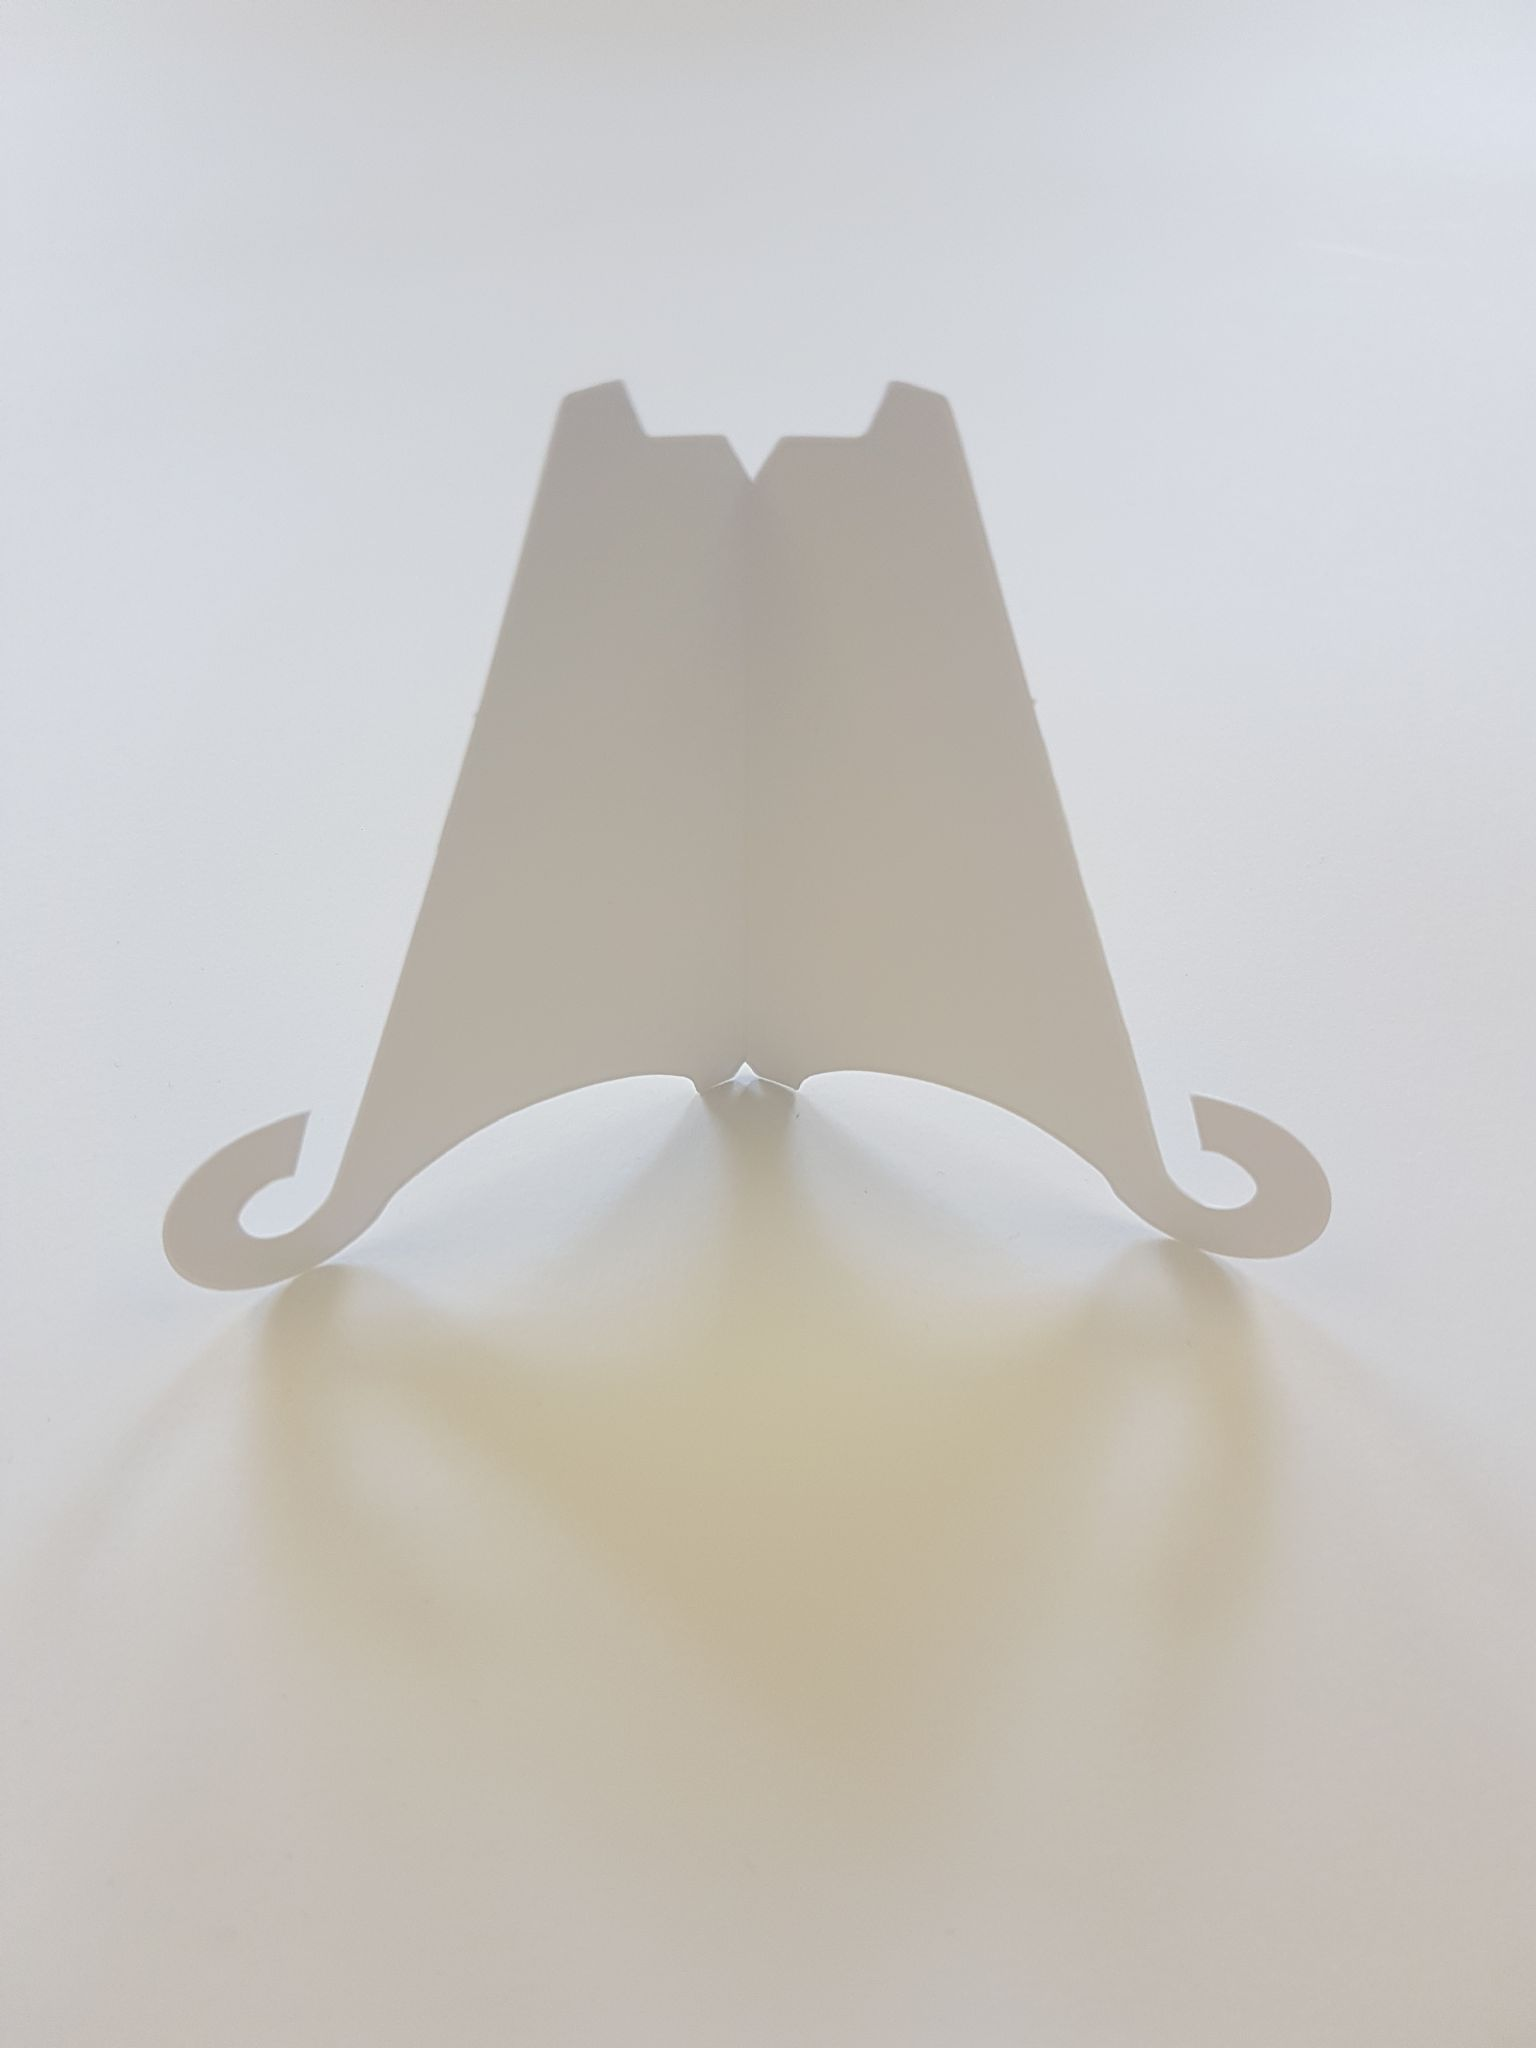 50 small white greeting card display stands m4hsunfo